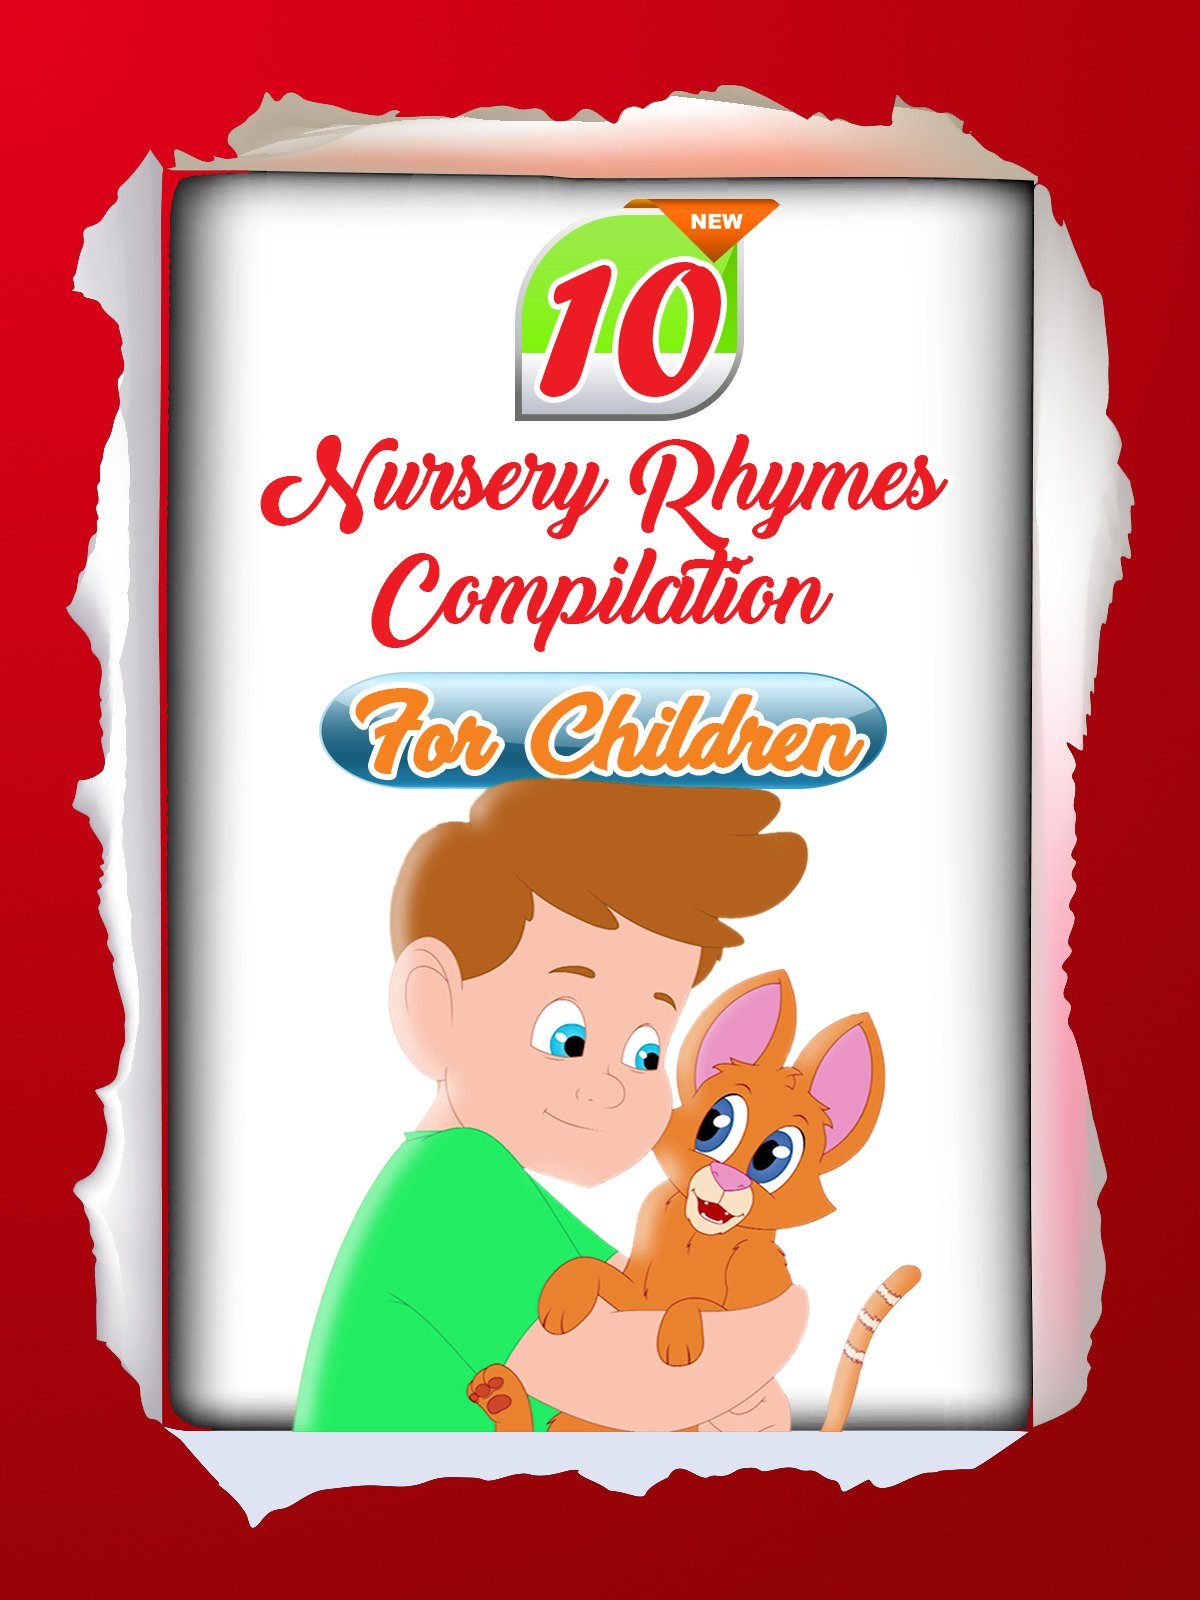 10 Nursery Rhymes Compilation for Children